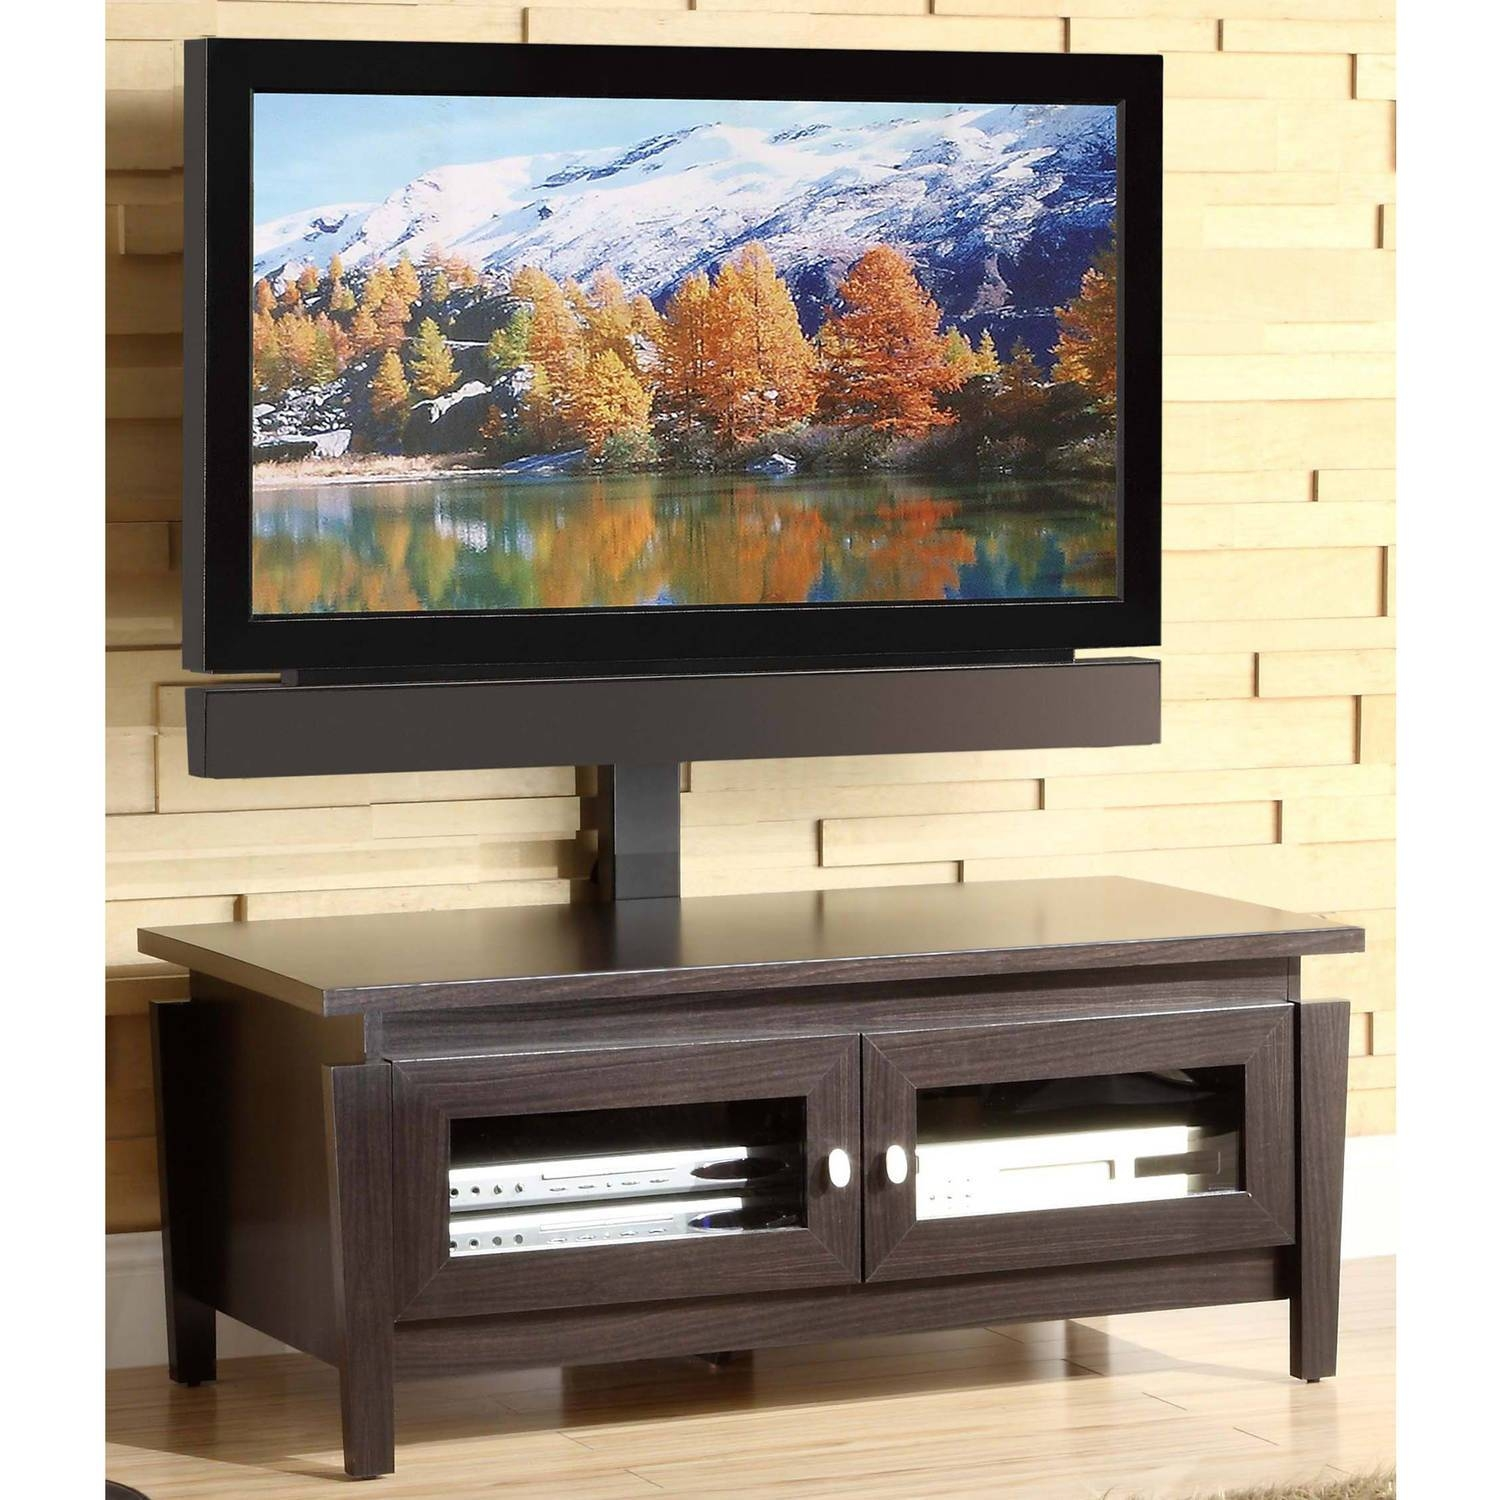 Whalen 3 Tier Cherry Brown Flat Panel Tv Stand For Tvs Up To 50 Inside Tv Stands Swivel Mount (View 7 of 15)